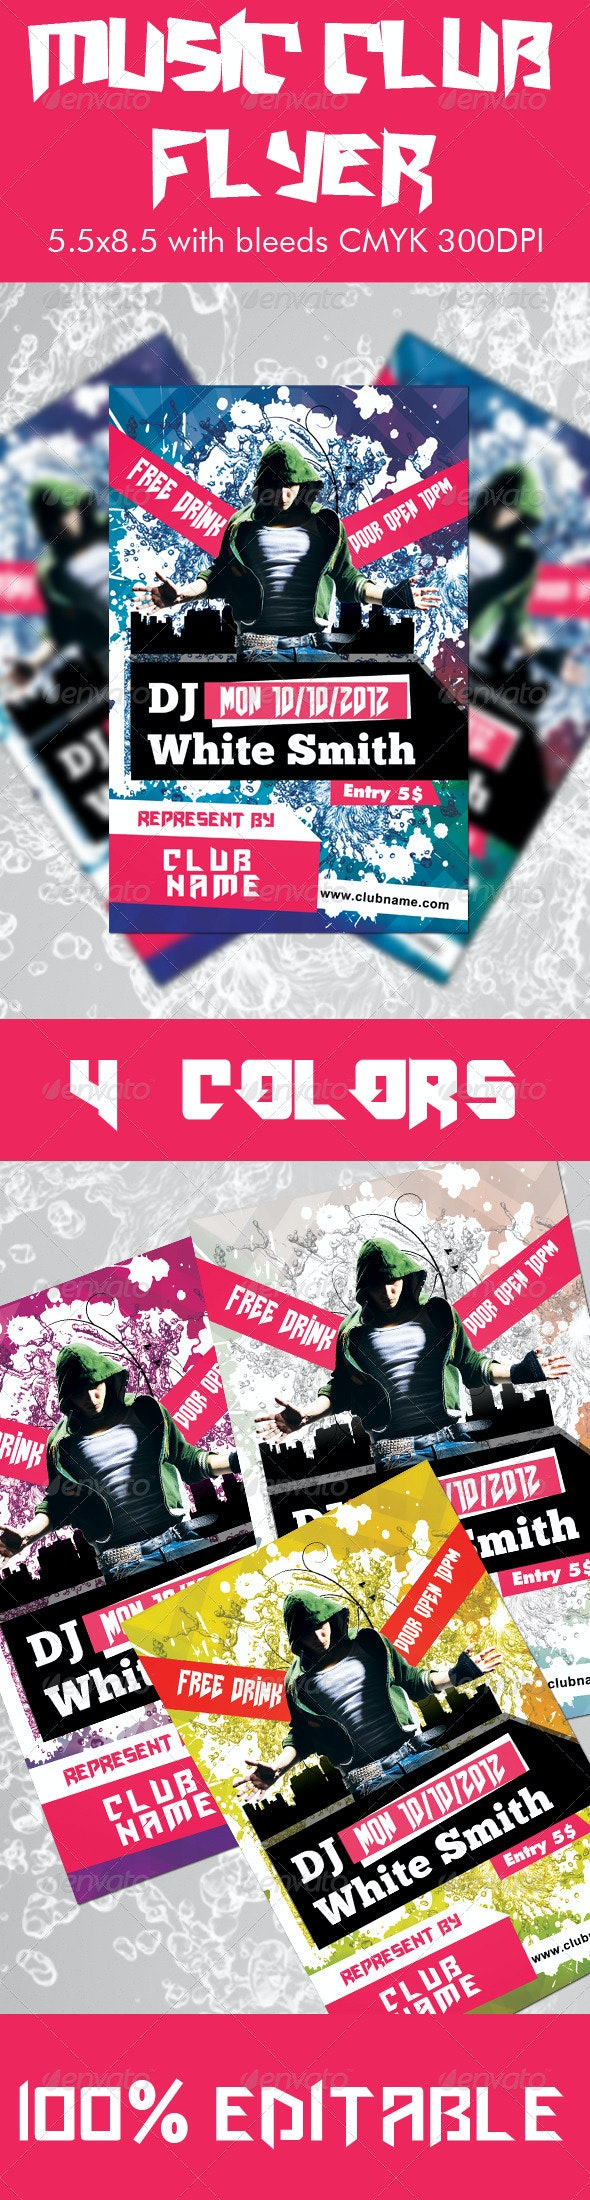 Music Club Flyer - Clubs & Parties Events